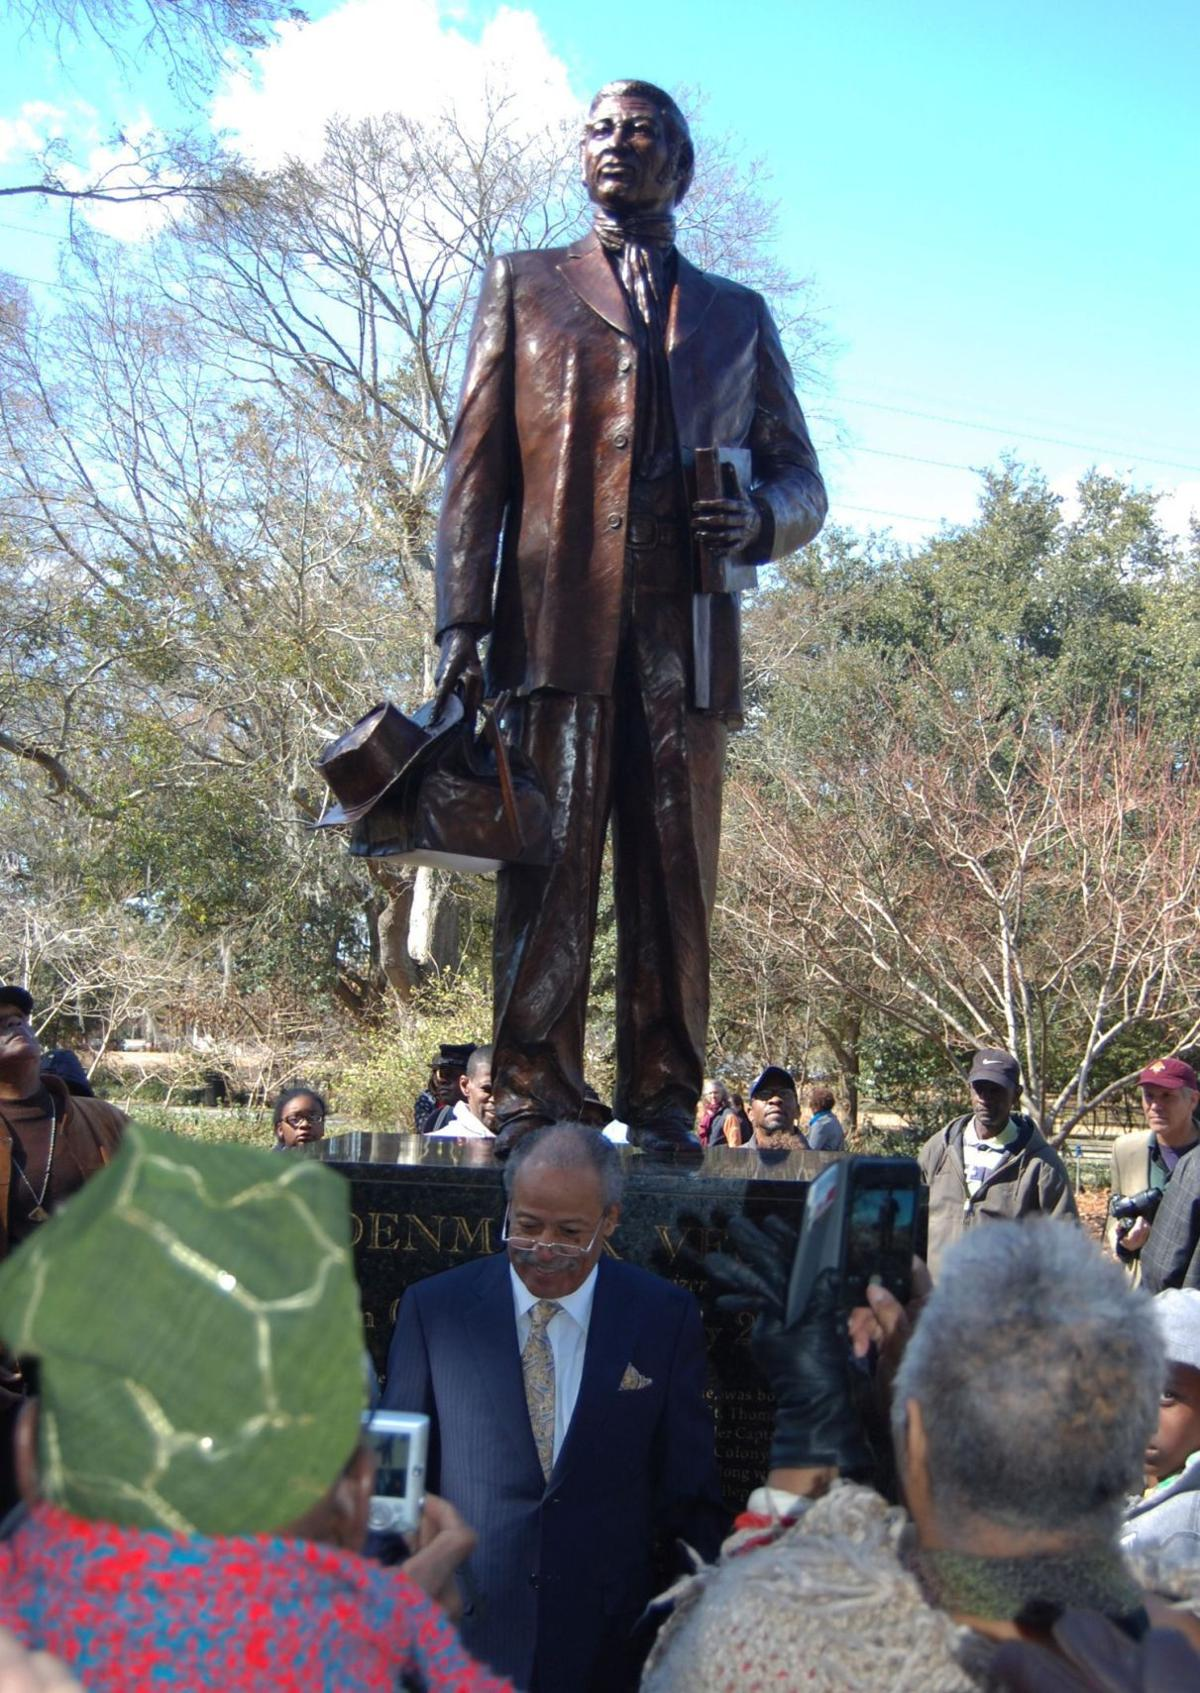 Denmark Vesey monument unveiled before hundreds